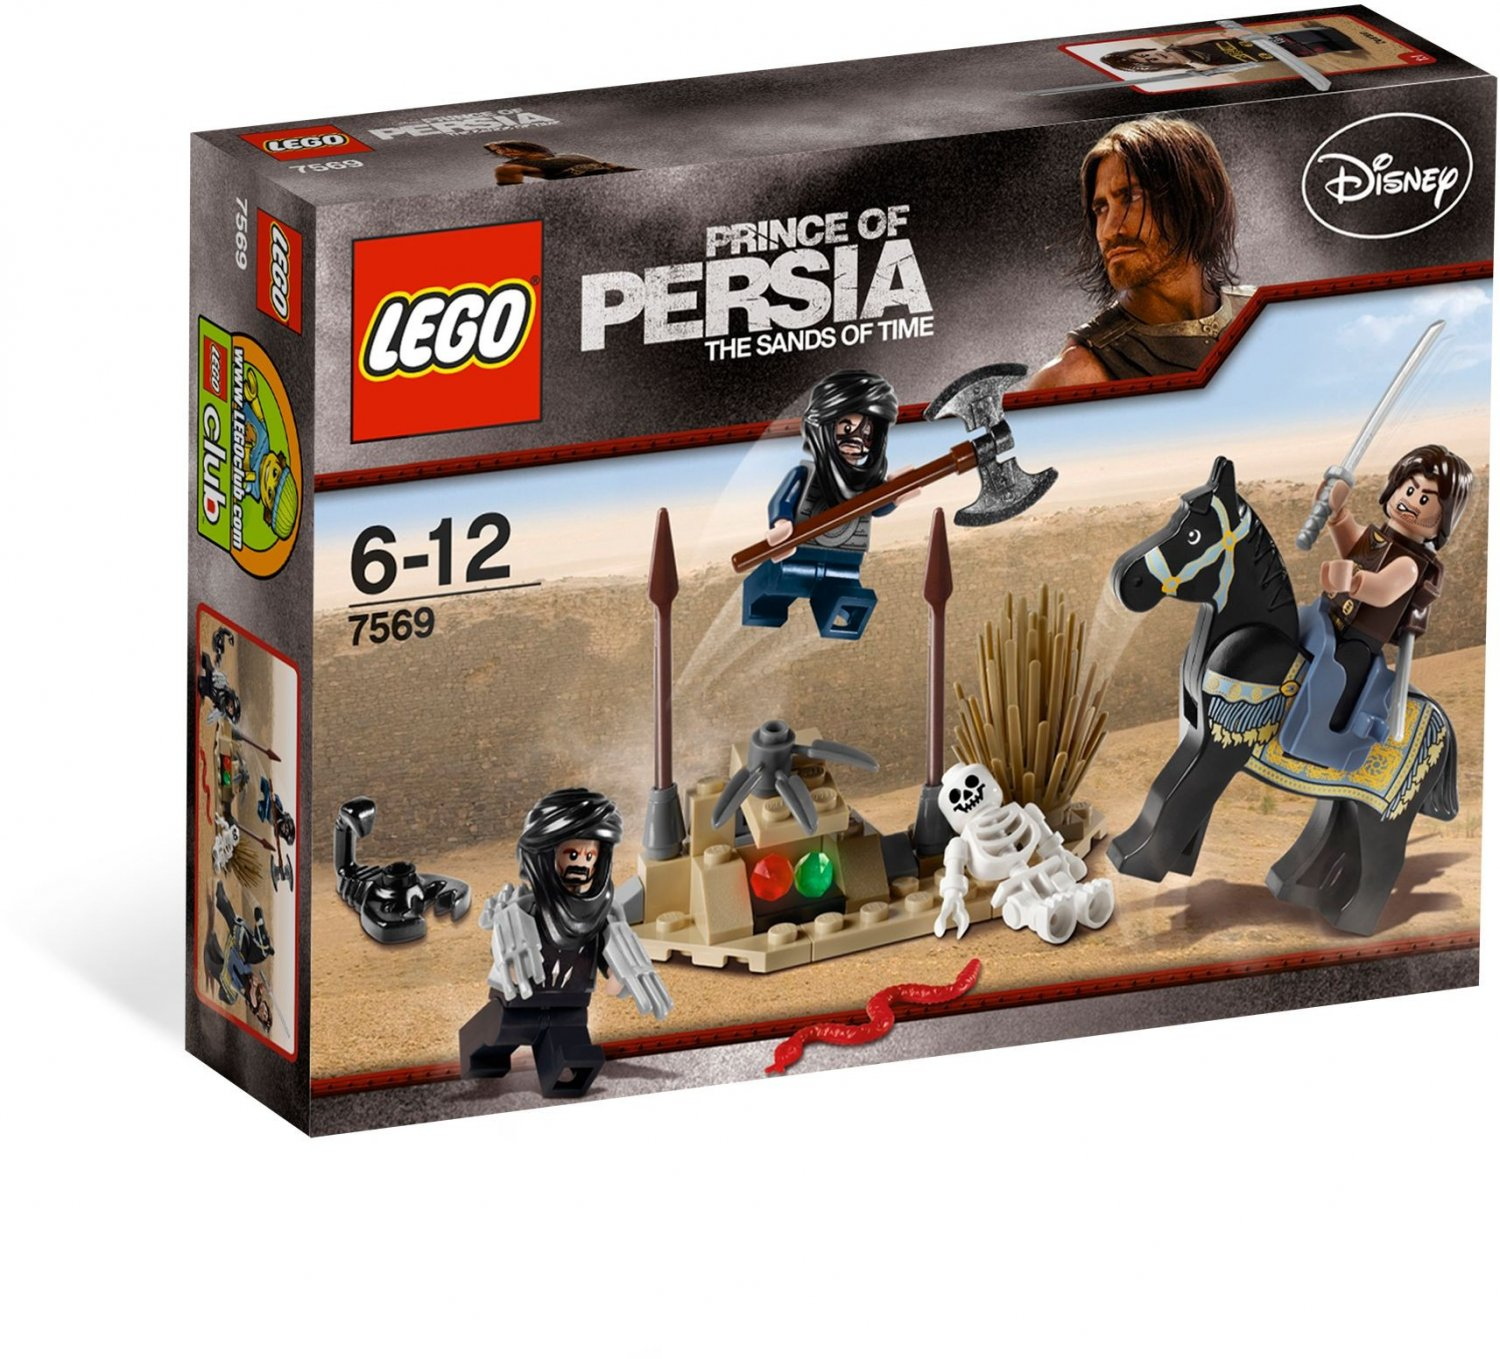 Lego Prince of Persia Desert Attack 7569 (2010) Factory Sealed Set!